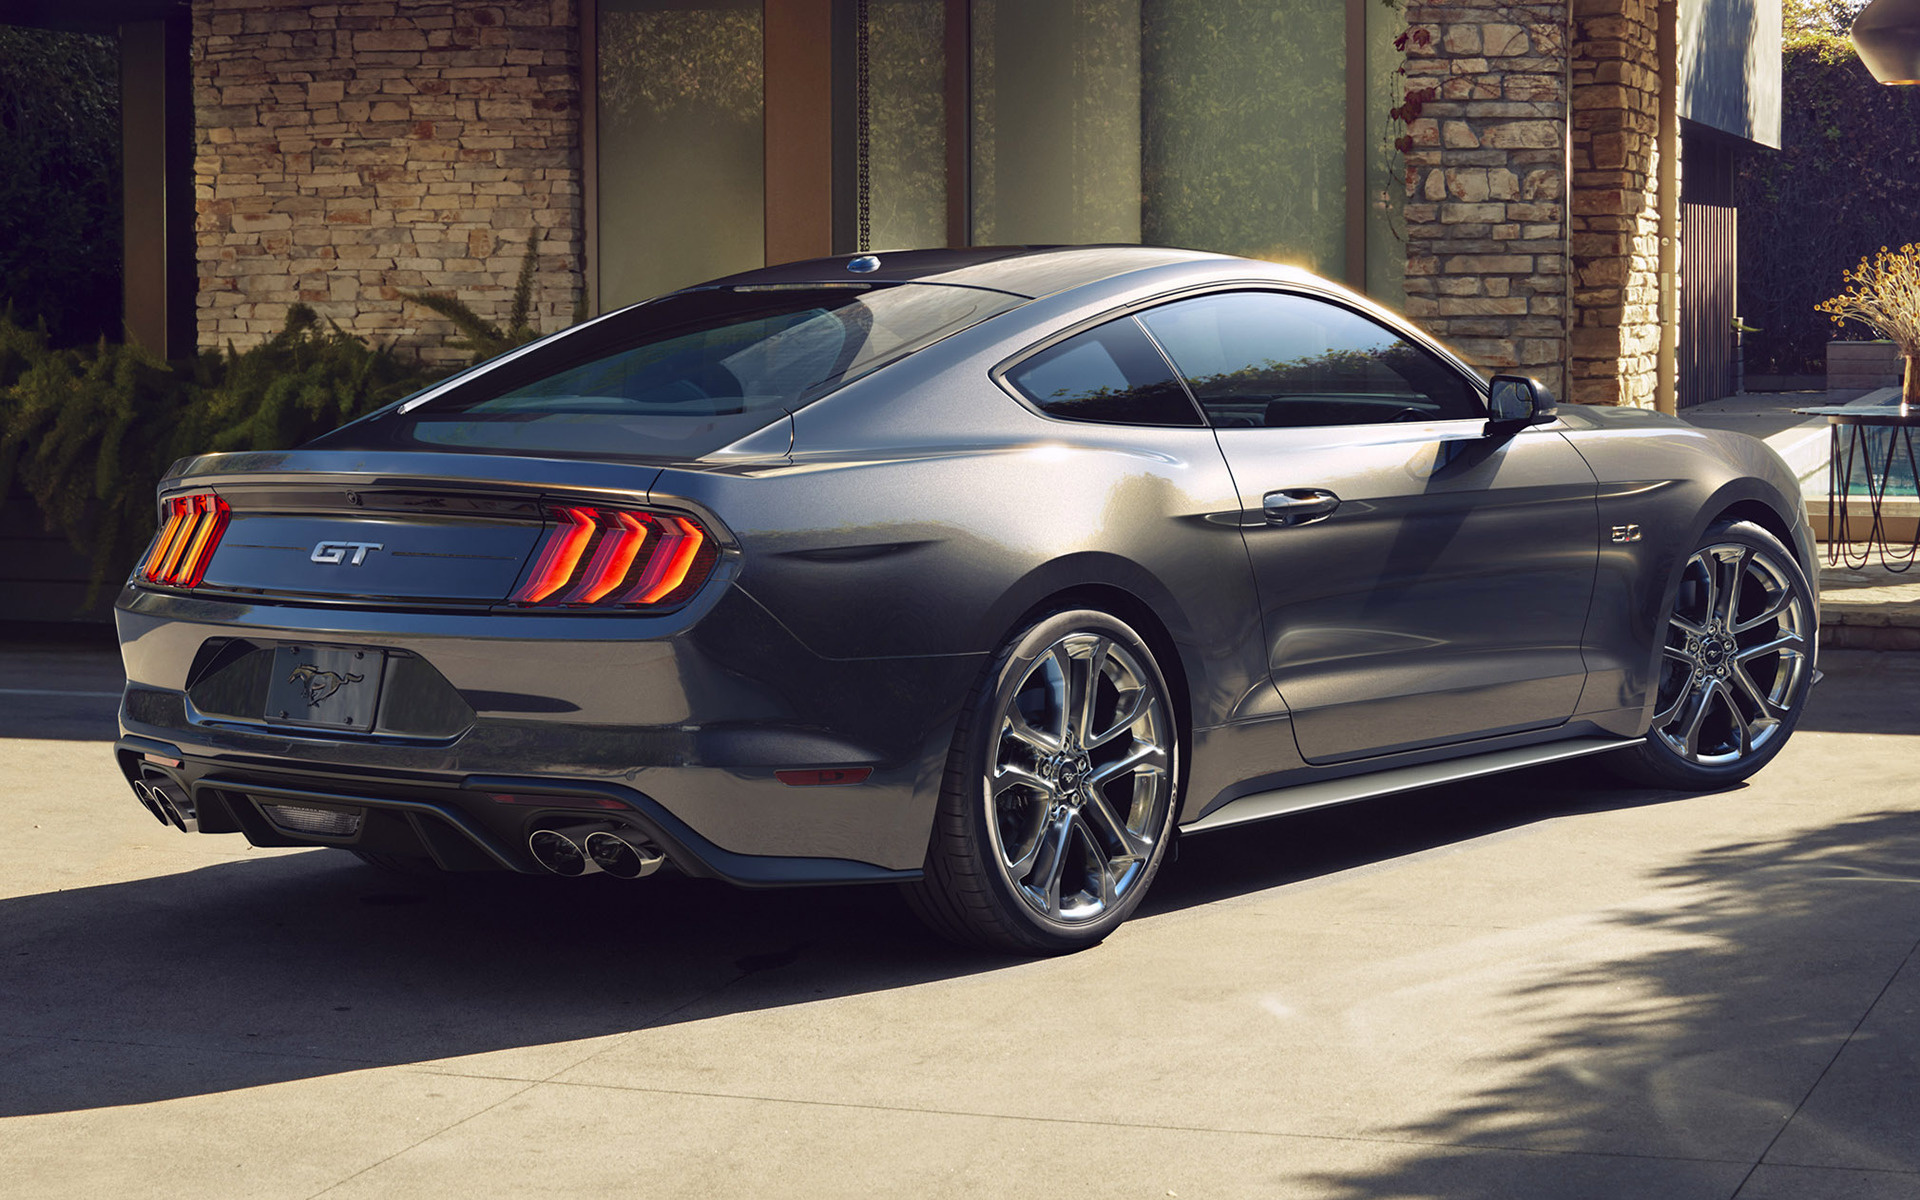 2018 Ford Mustang GT - Wallpapers and